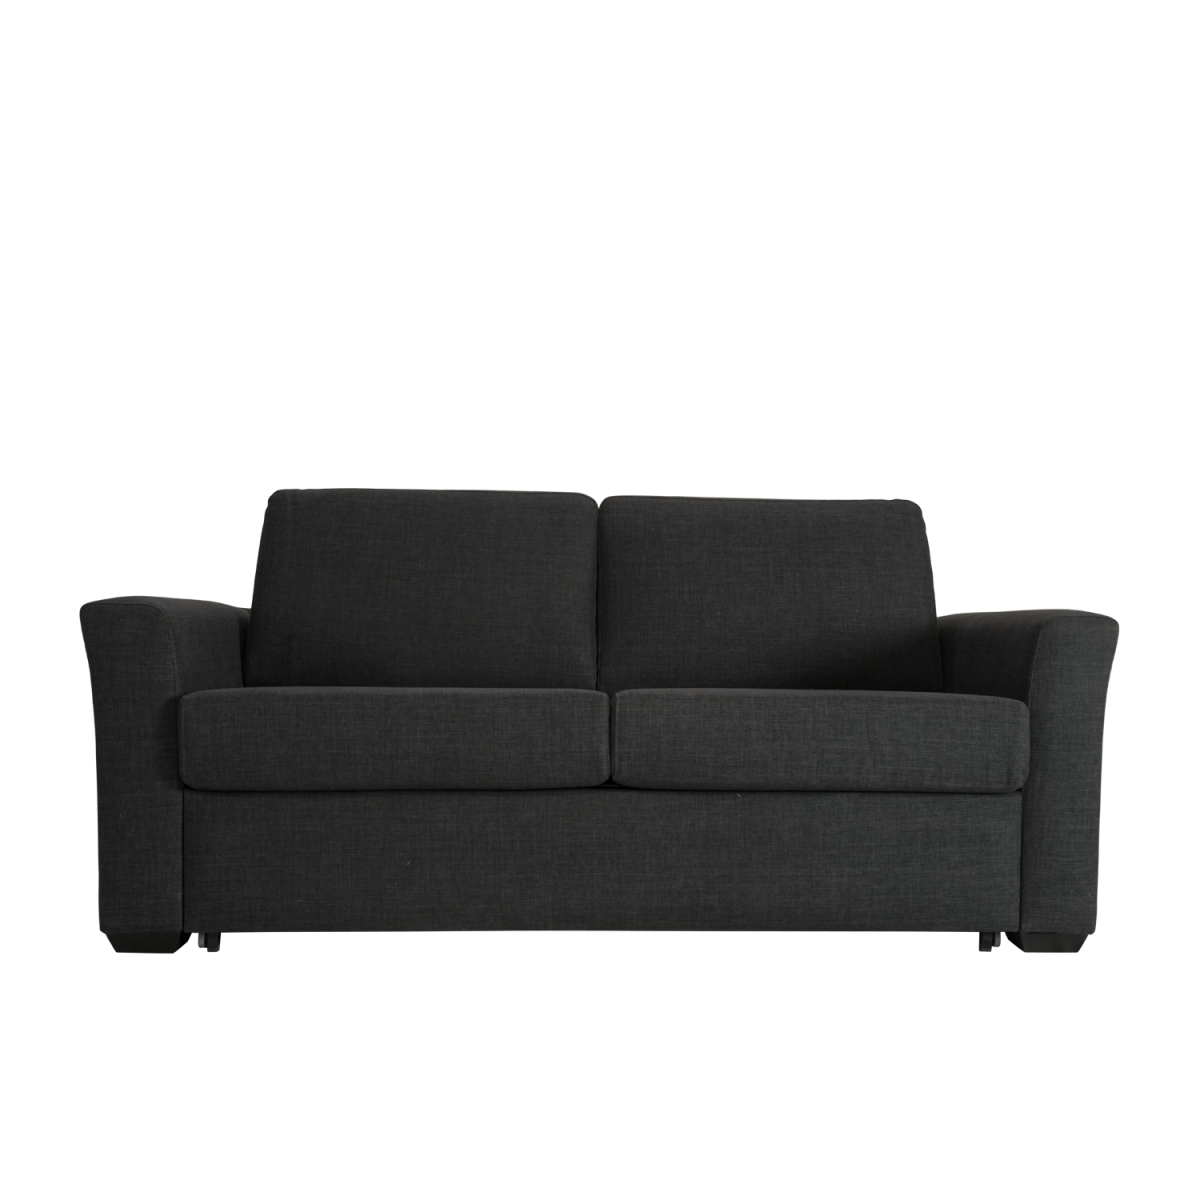 Double Star Furniture Tammy Fabric Sofa Bed Black